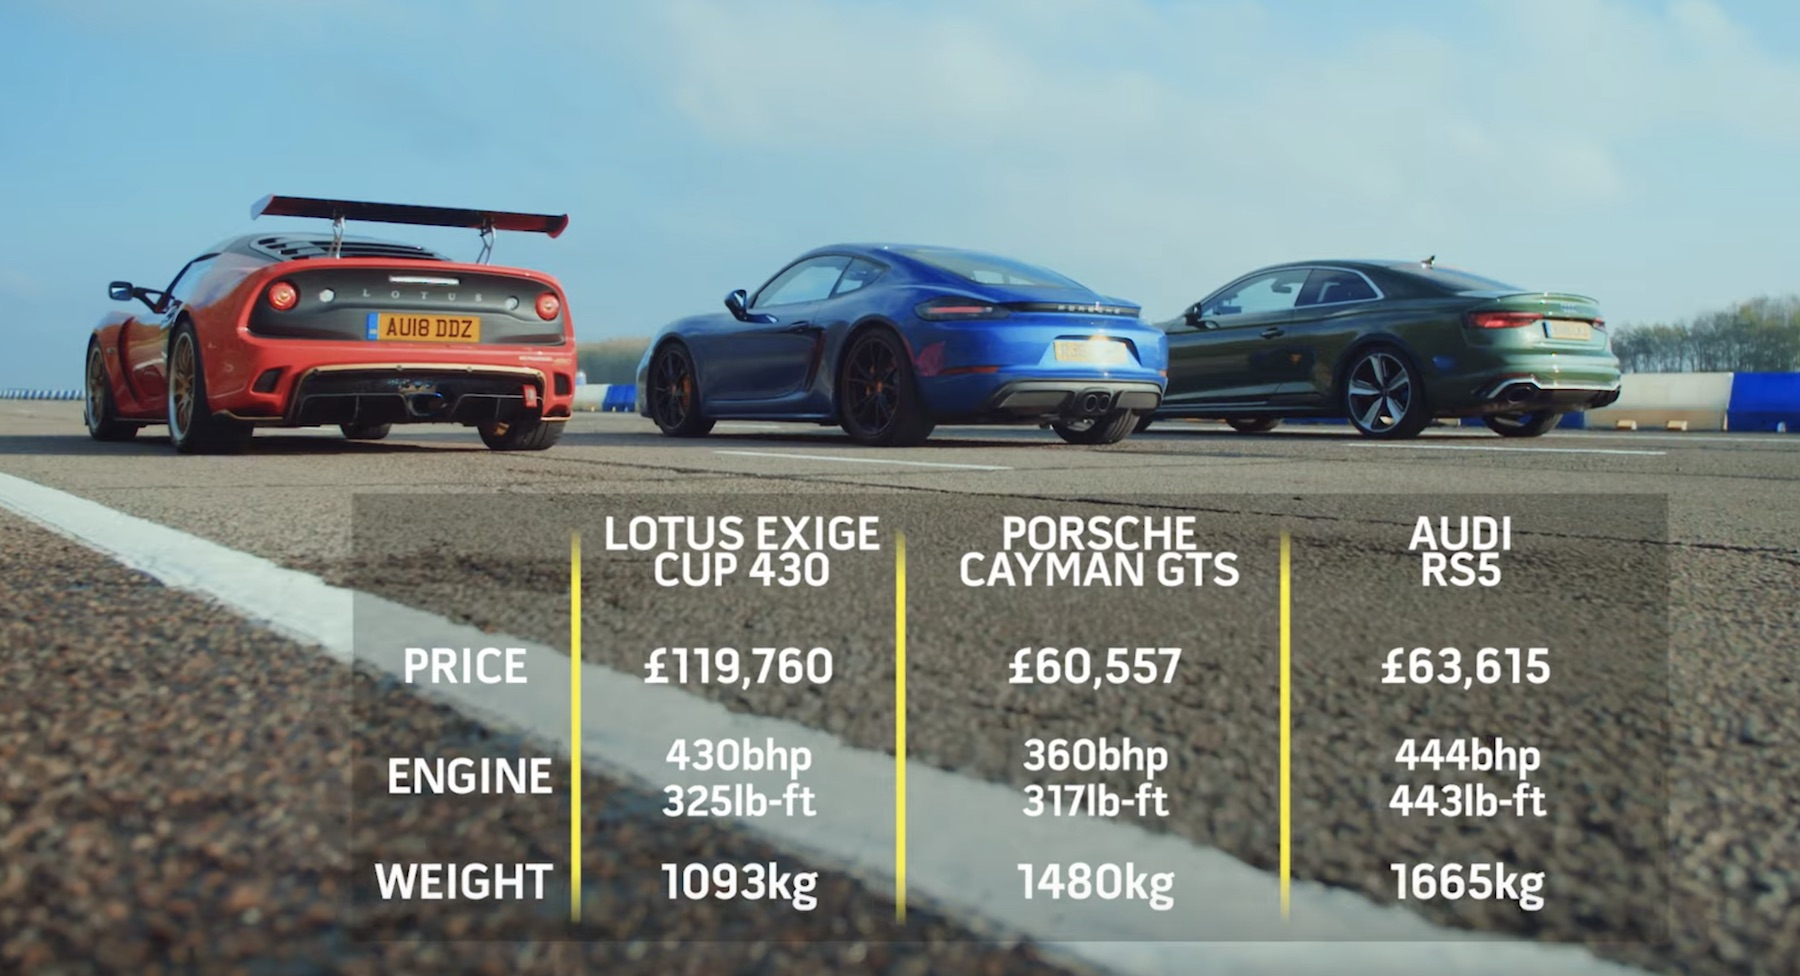 Top Gear Races The Lotus Exige Cup 430 Against The Audi Rs5 And The Porsche Cayman Gts News Supercars Net